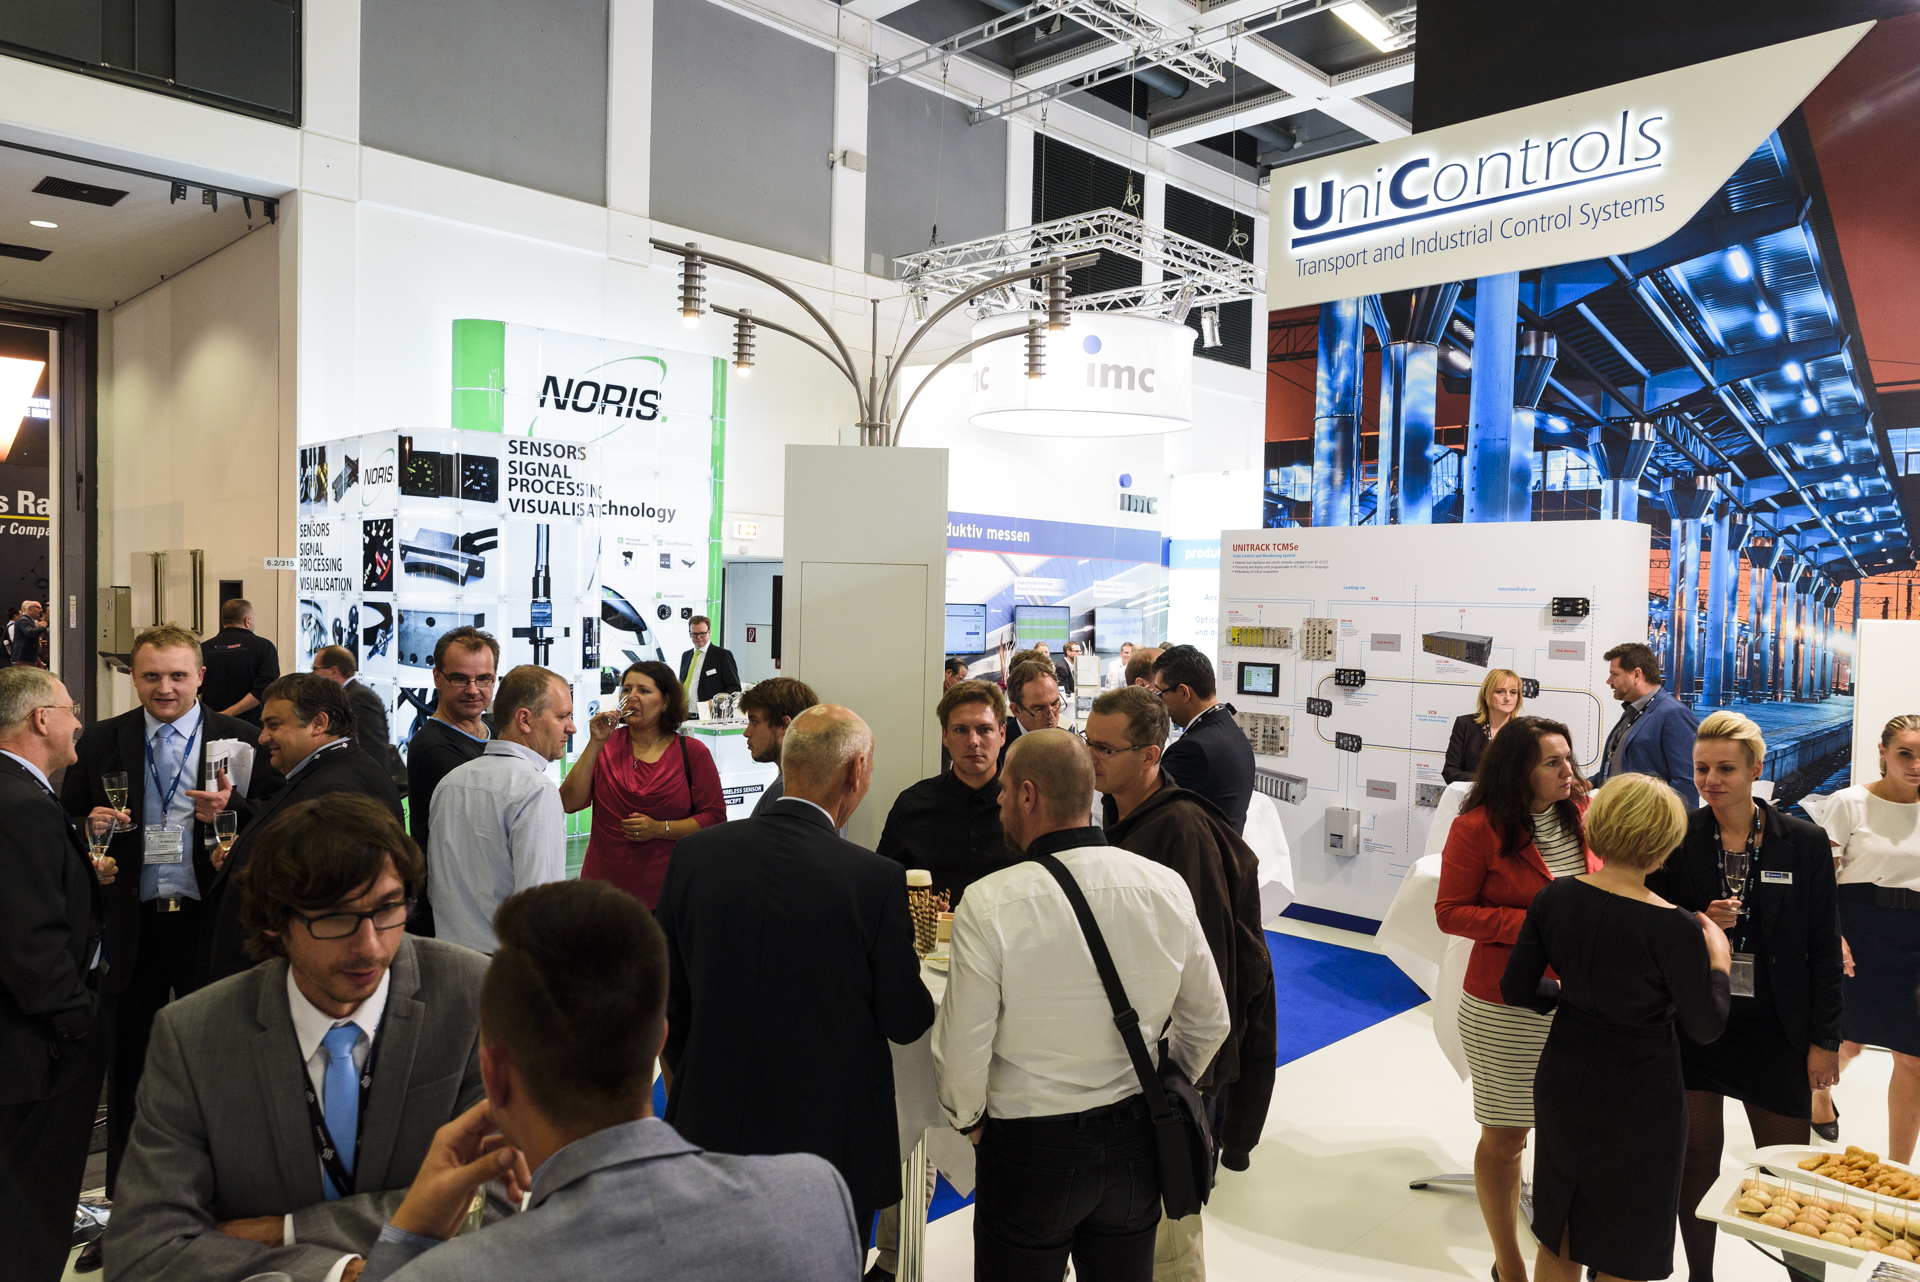 innotrans2016 expomedia unicontrols event 0009